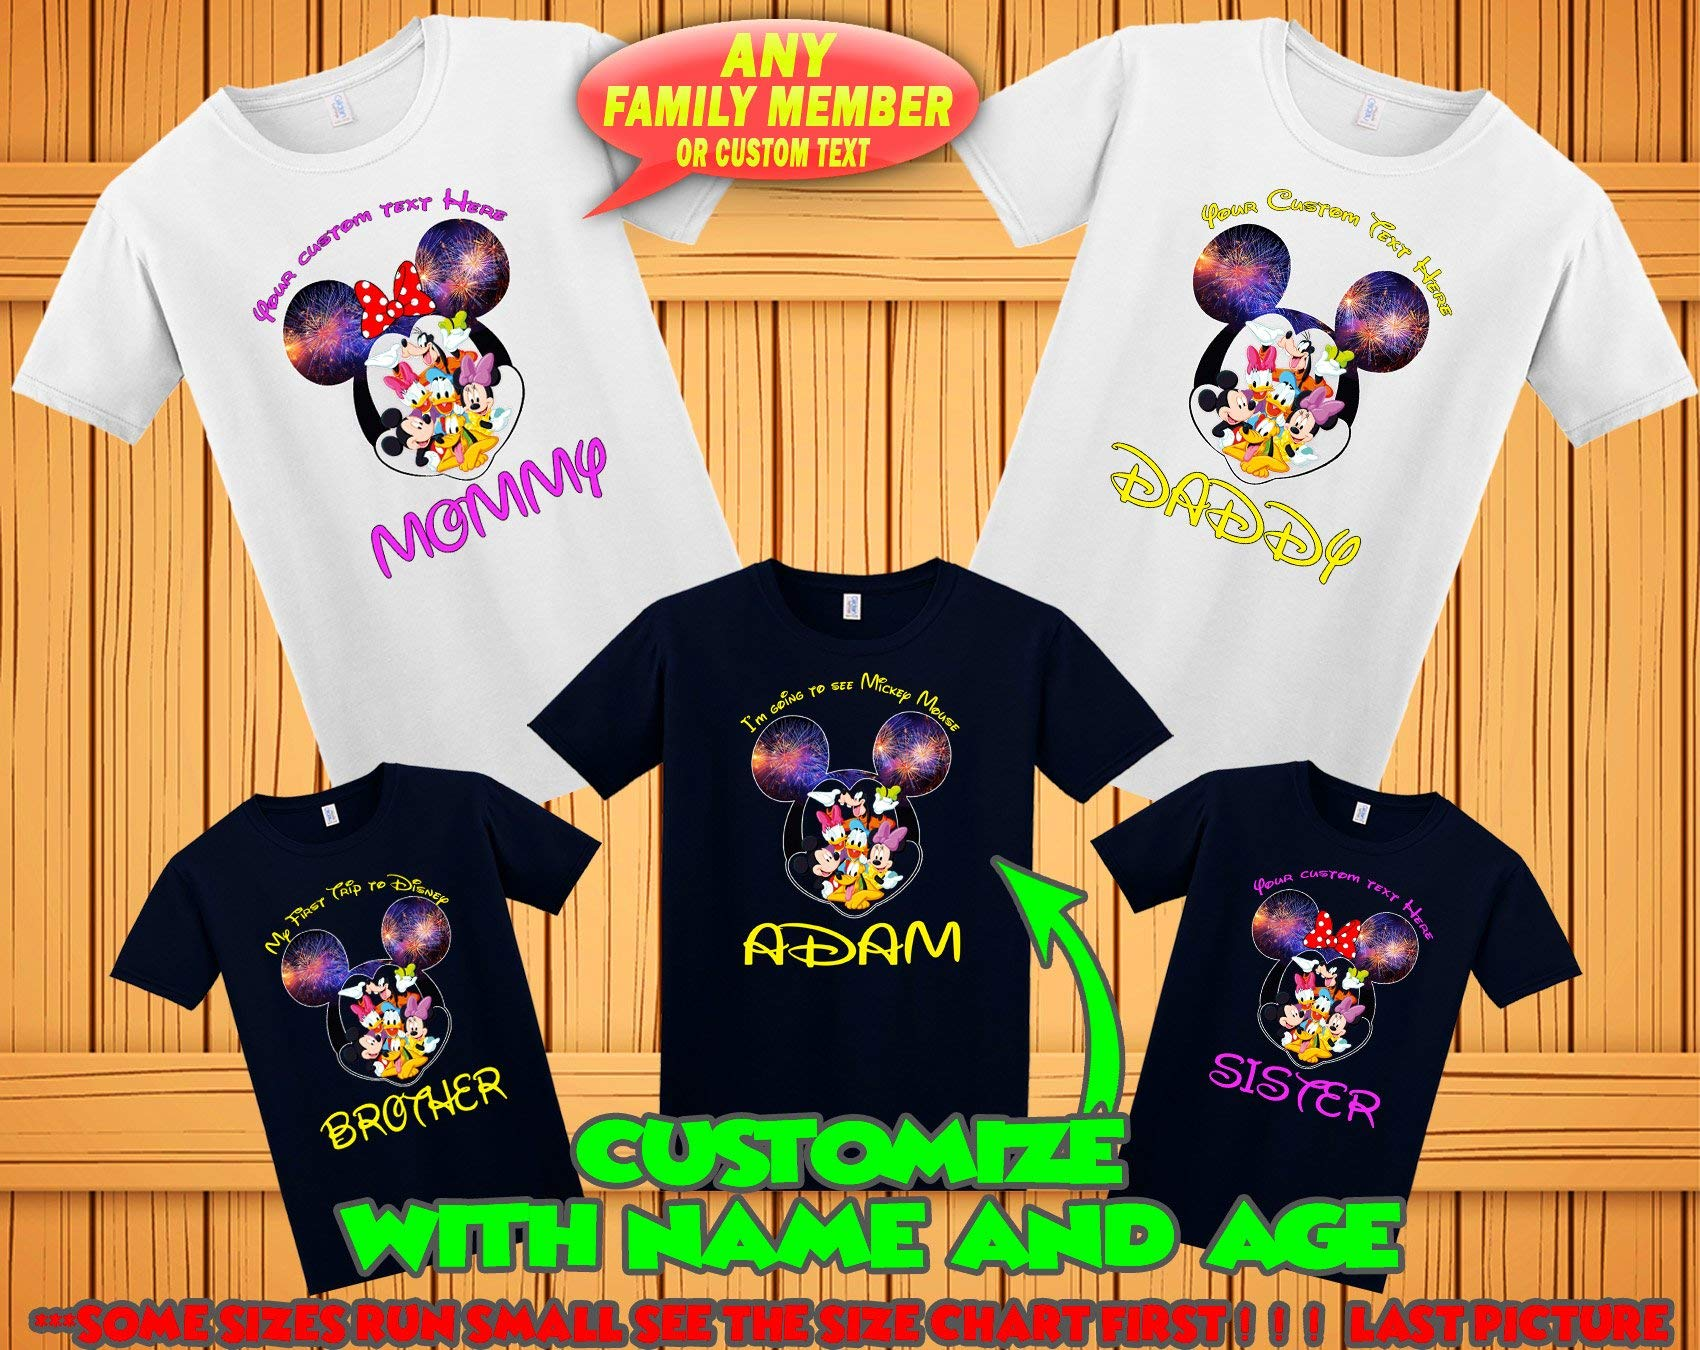 Mickey Minnie Mouse family matching tshirts, Disney family matching custom t-shirts, Family vacation disney shirts, custom Personalized disney shirt, Personalized Disney Shirts for Family, by V-J